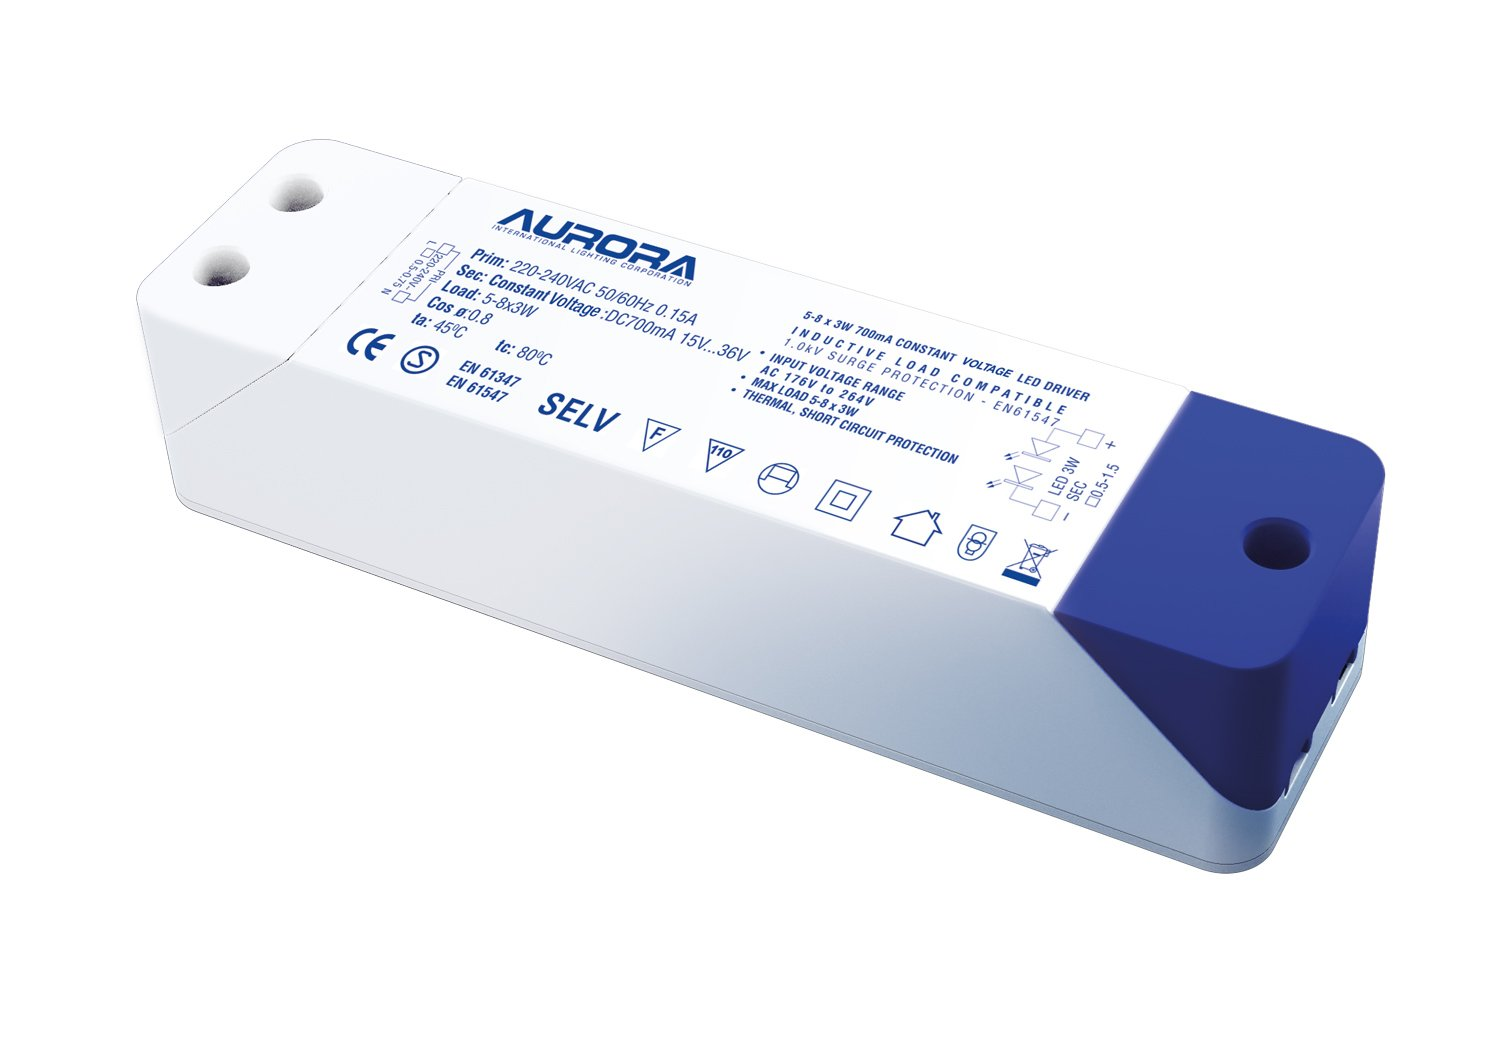 Aurora Led Driver 25 W Lighting To Make 1 A Constant Current Circuit Electronic